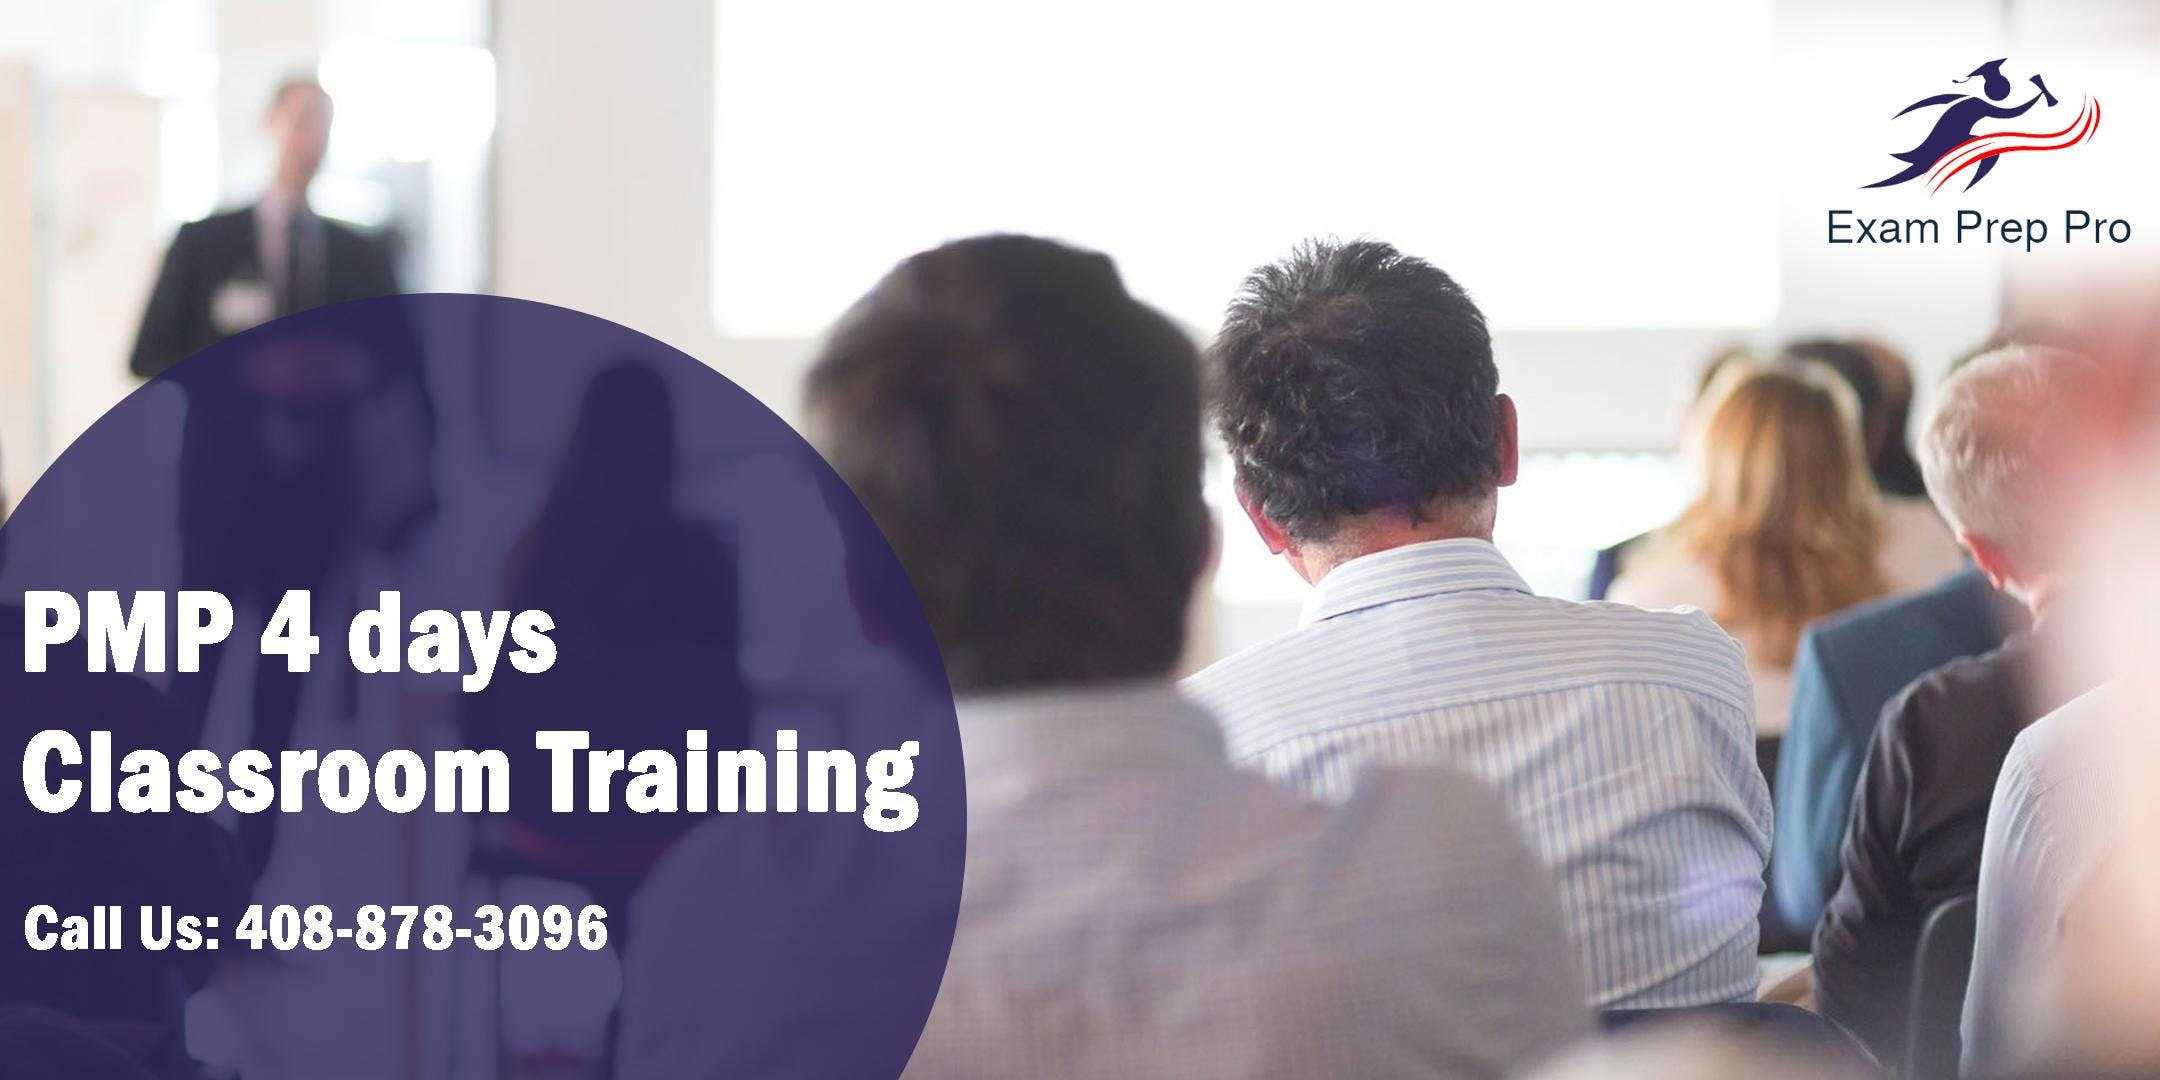 PMP 4 days Classroom Training in Nashville,TN